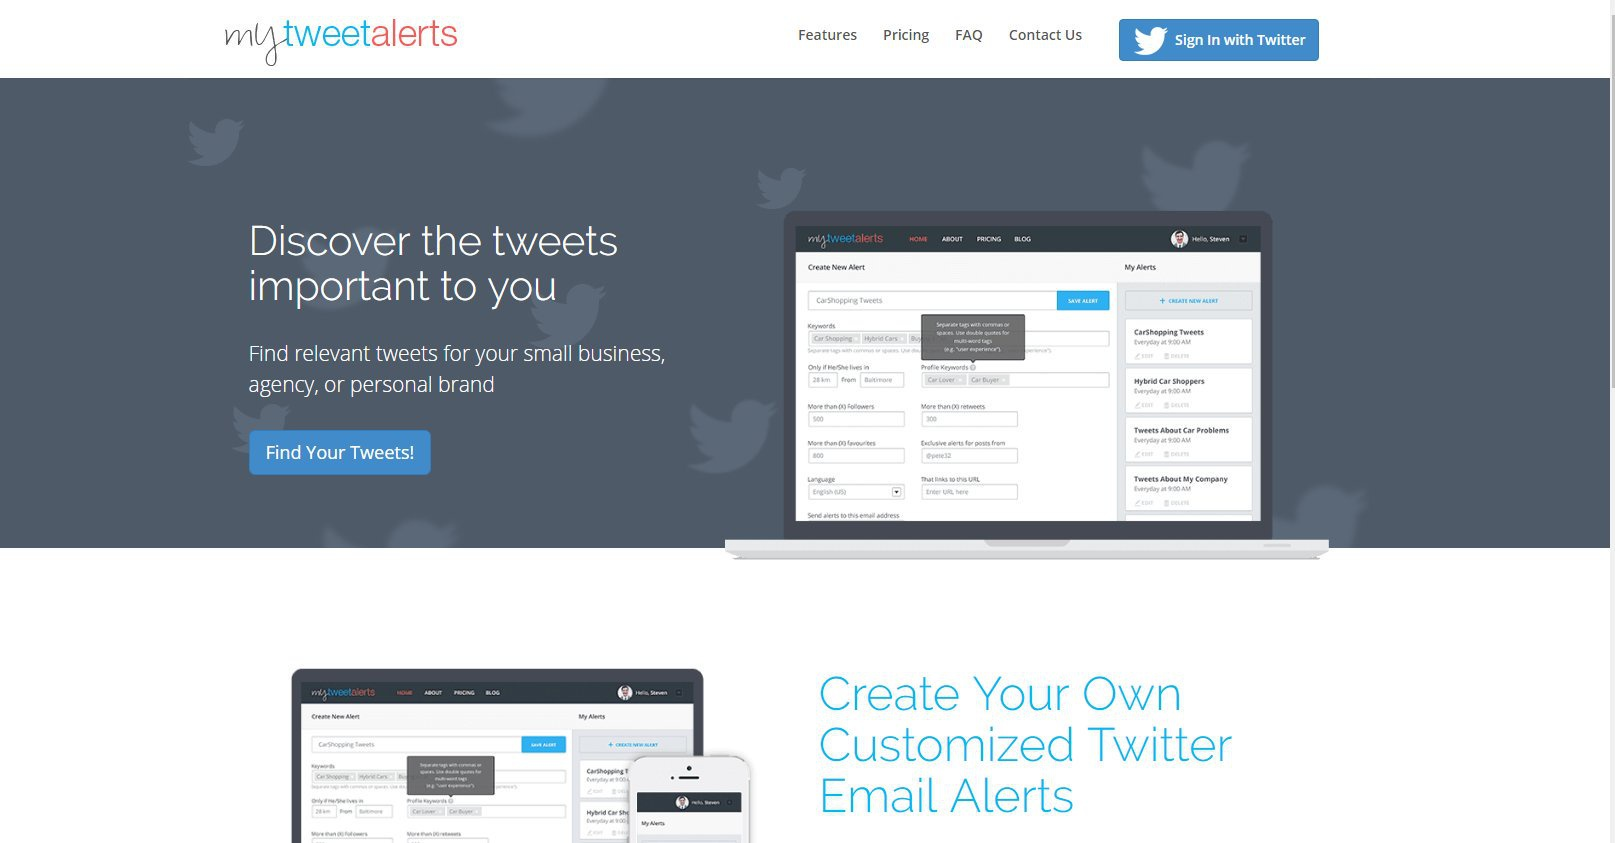 Find Tweets With Certain Words how to find tweets with certain words in them - quora